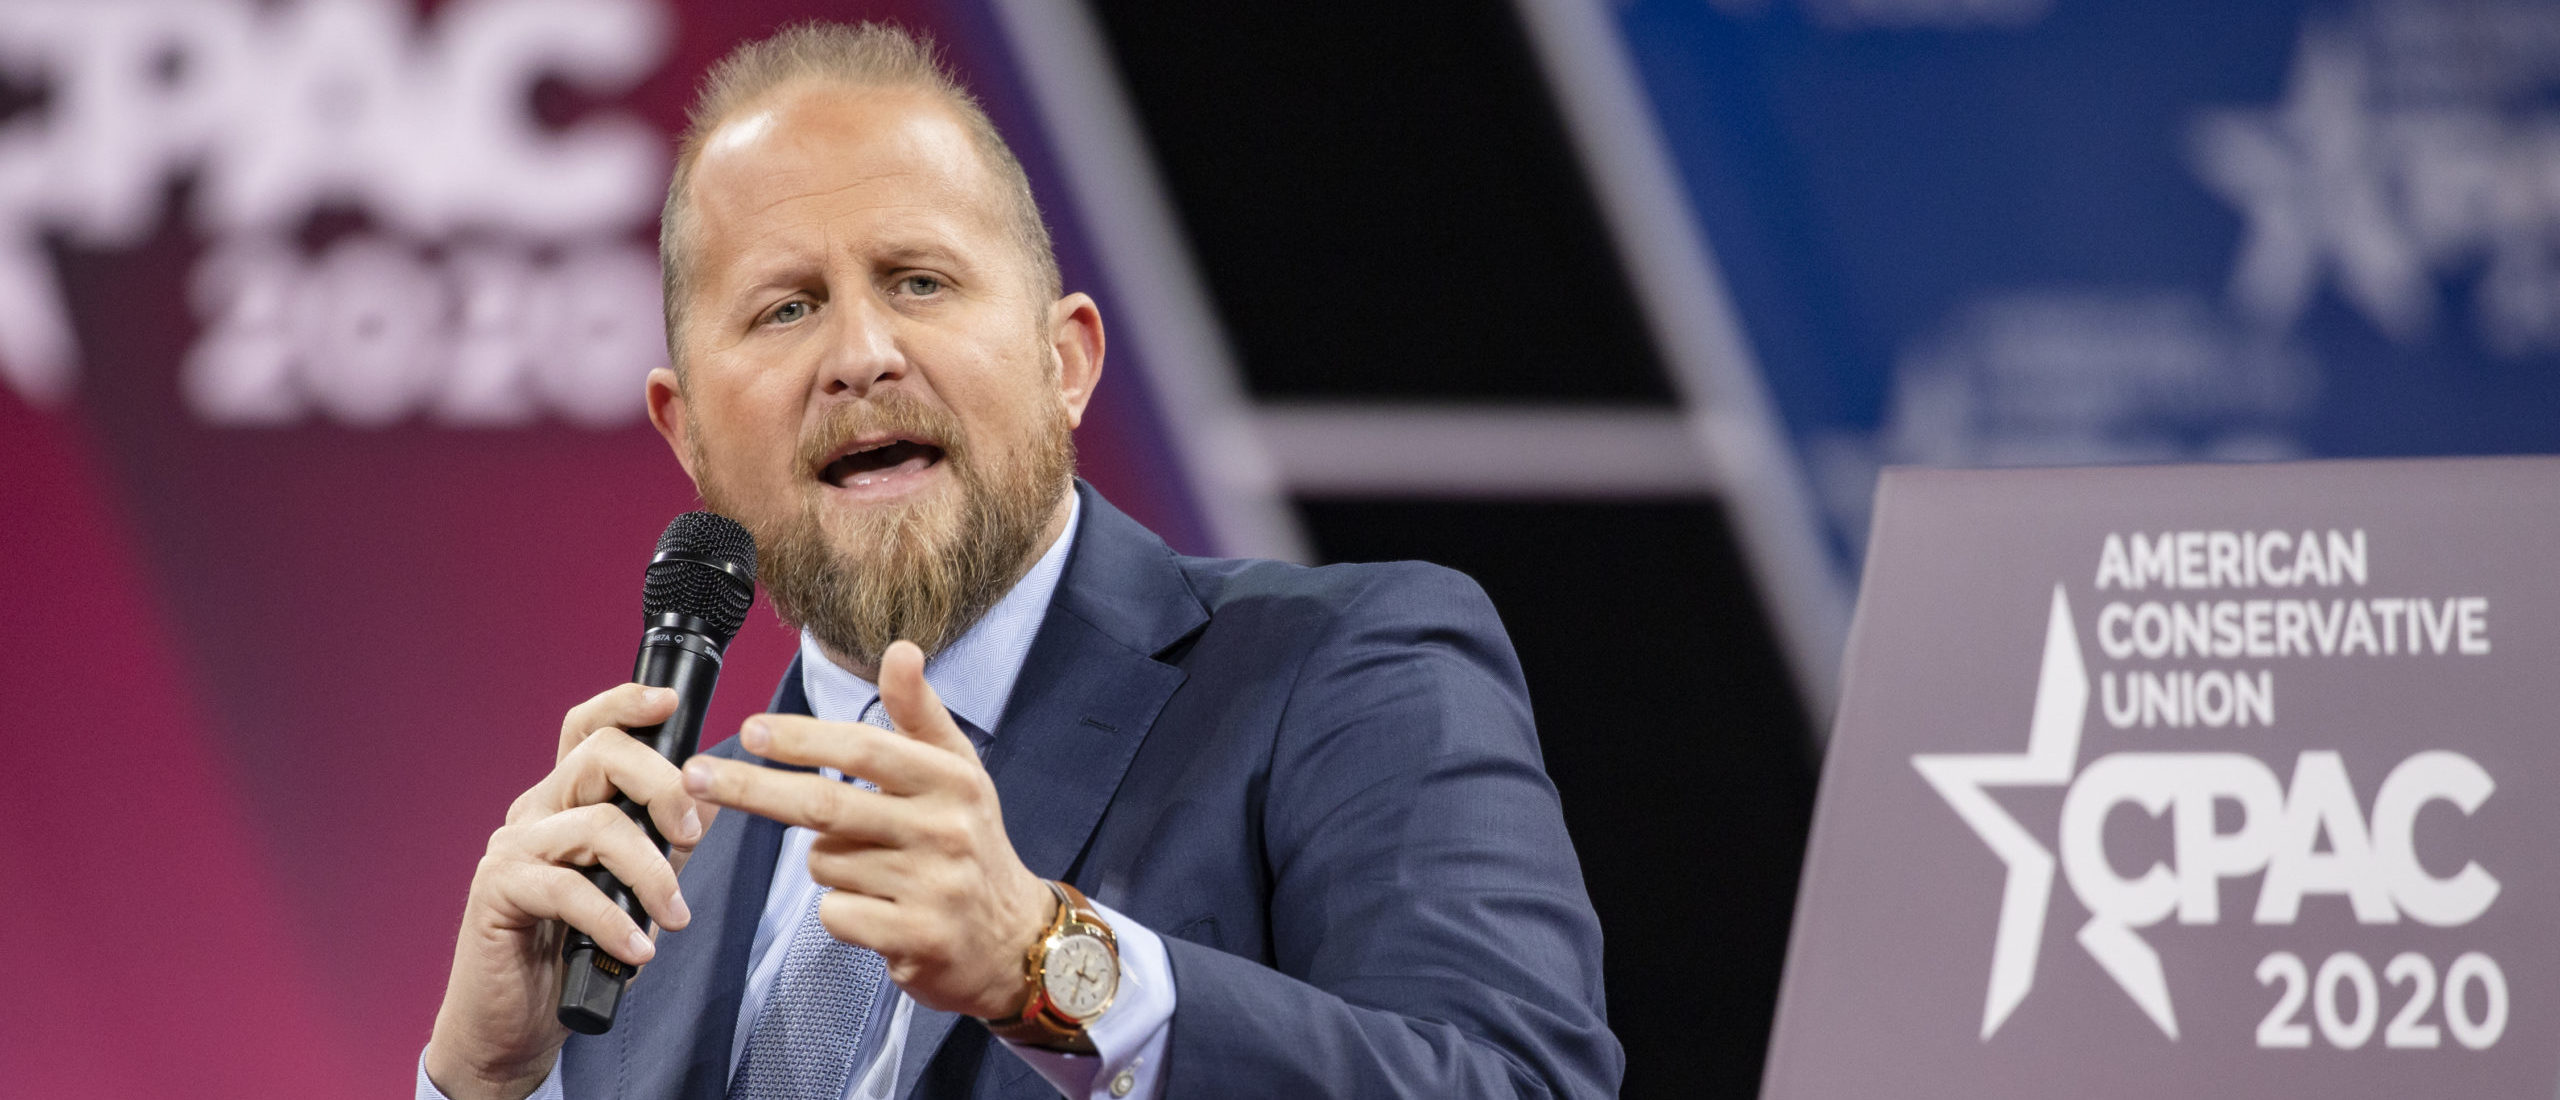 <p>REPORT: Former Trump Campaign Manager Brad Parscale Advising Caitlyn Jenner On Potentially Running For California Governor thumbnail